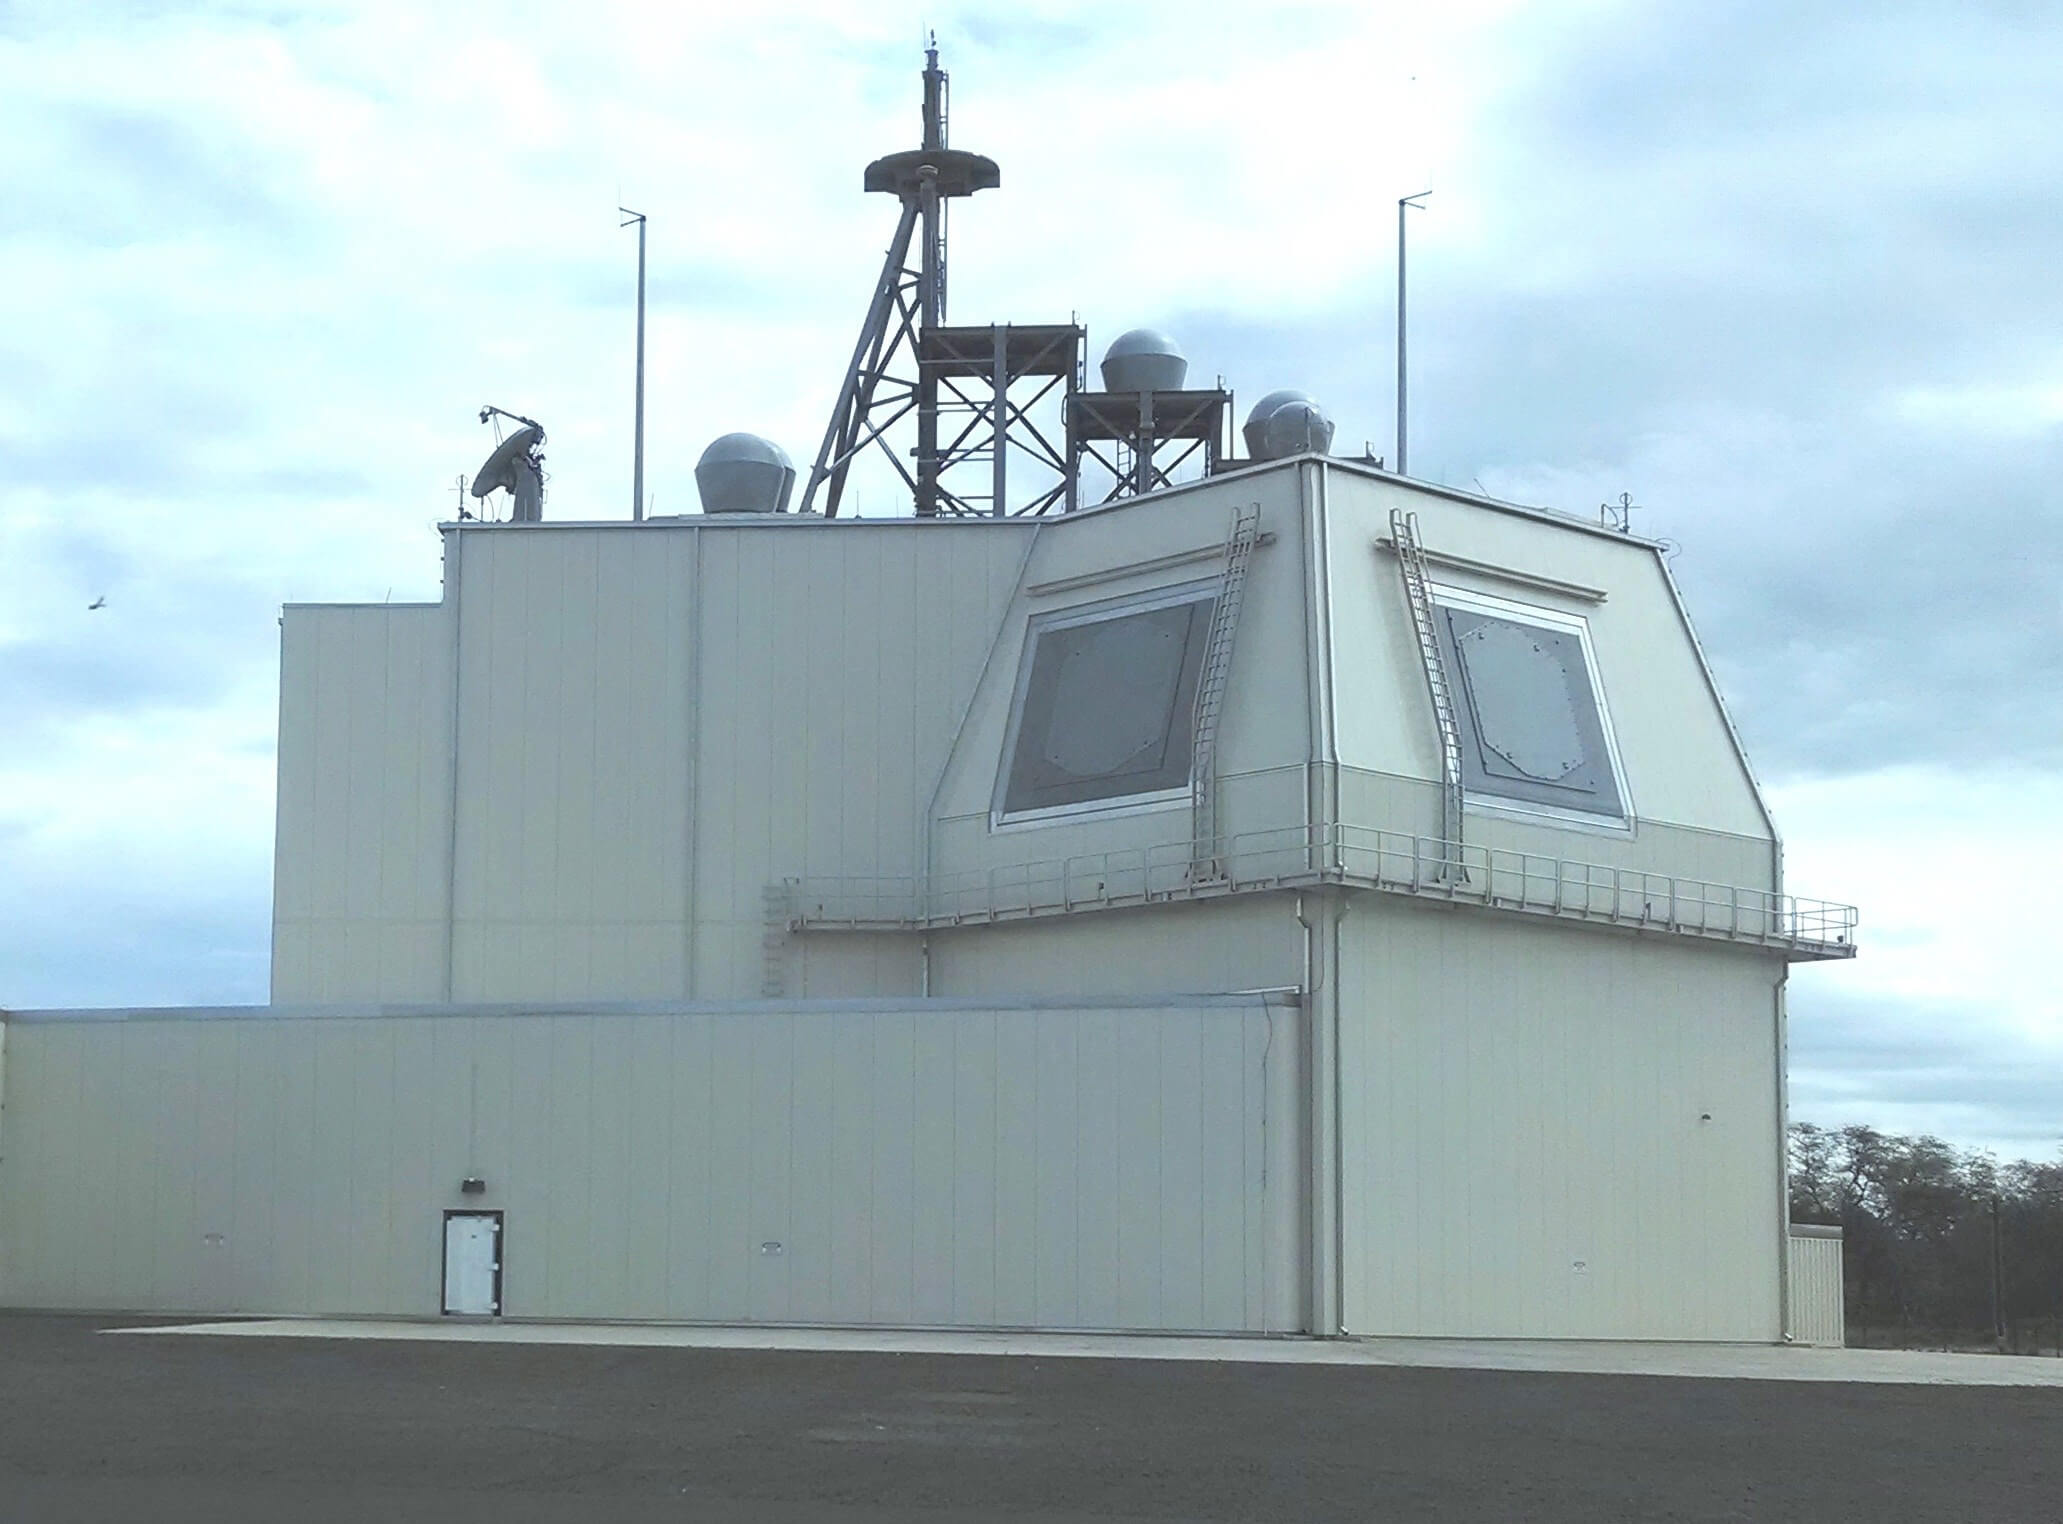 Declassified DoD/IG report shows US missile defense cybersecurity was a mess